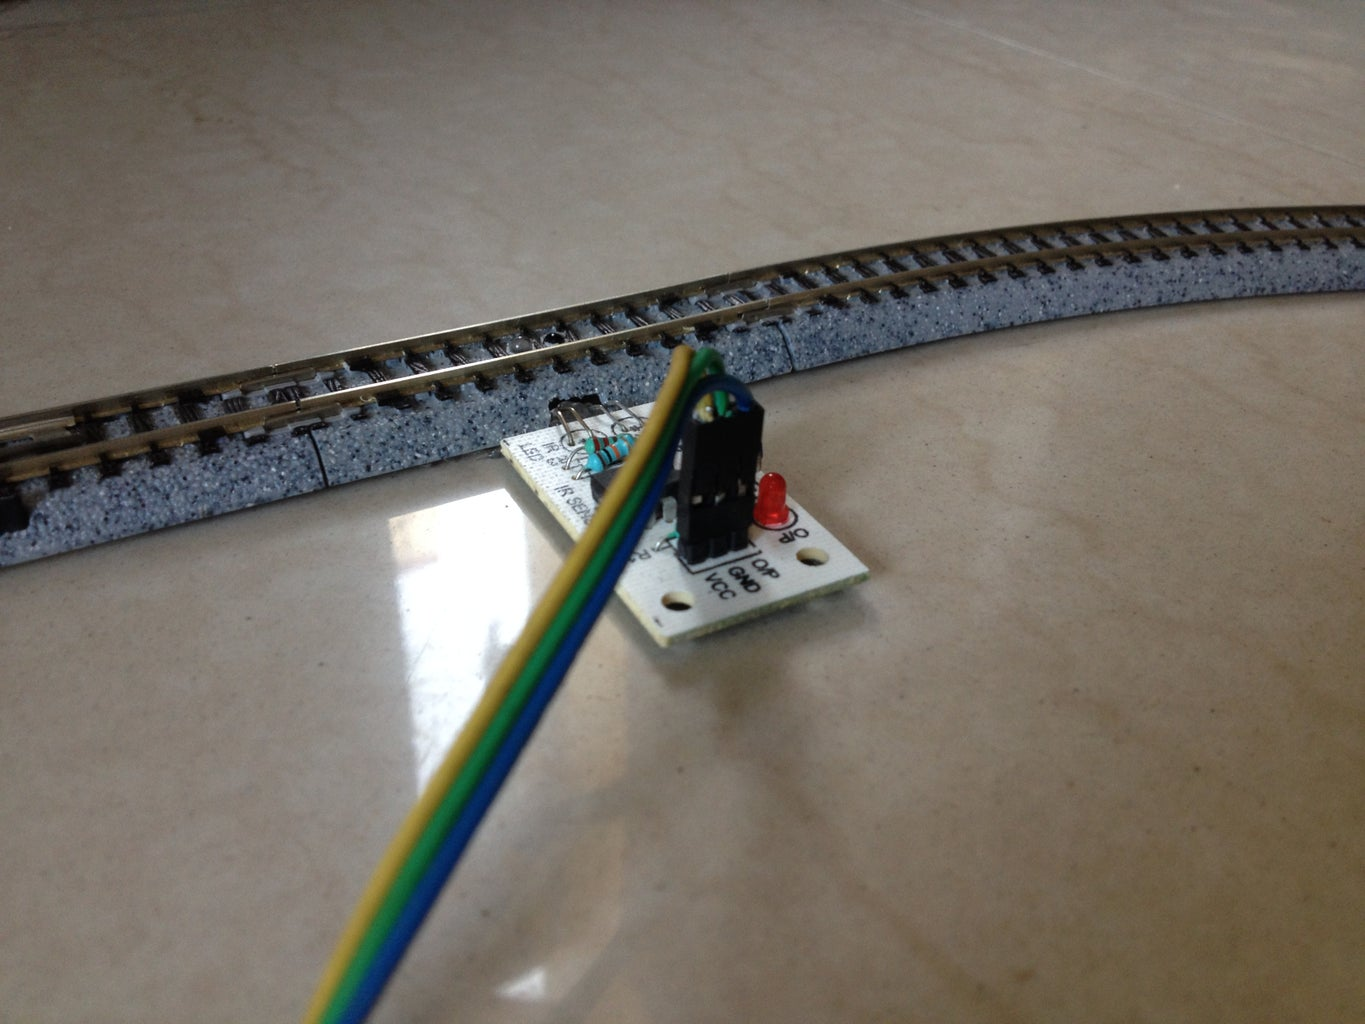 Connect the 'sensored' Tracks to the Arduino Board